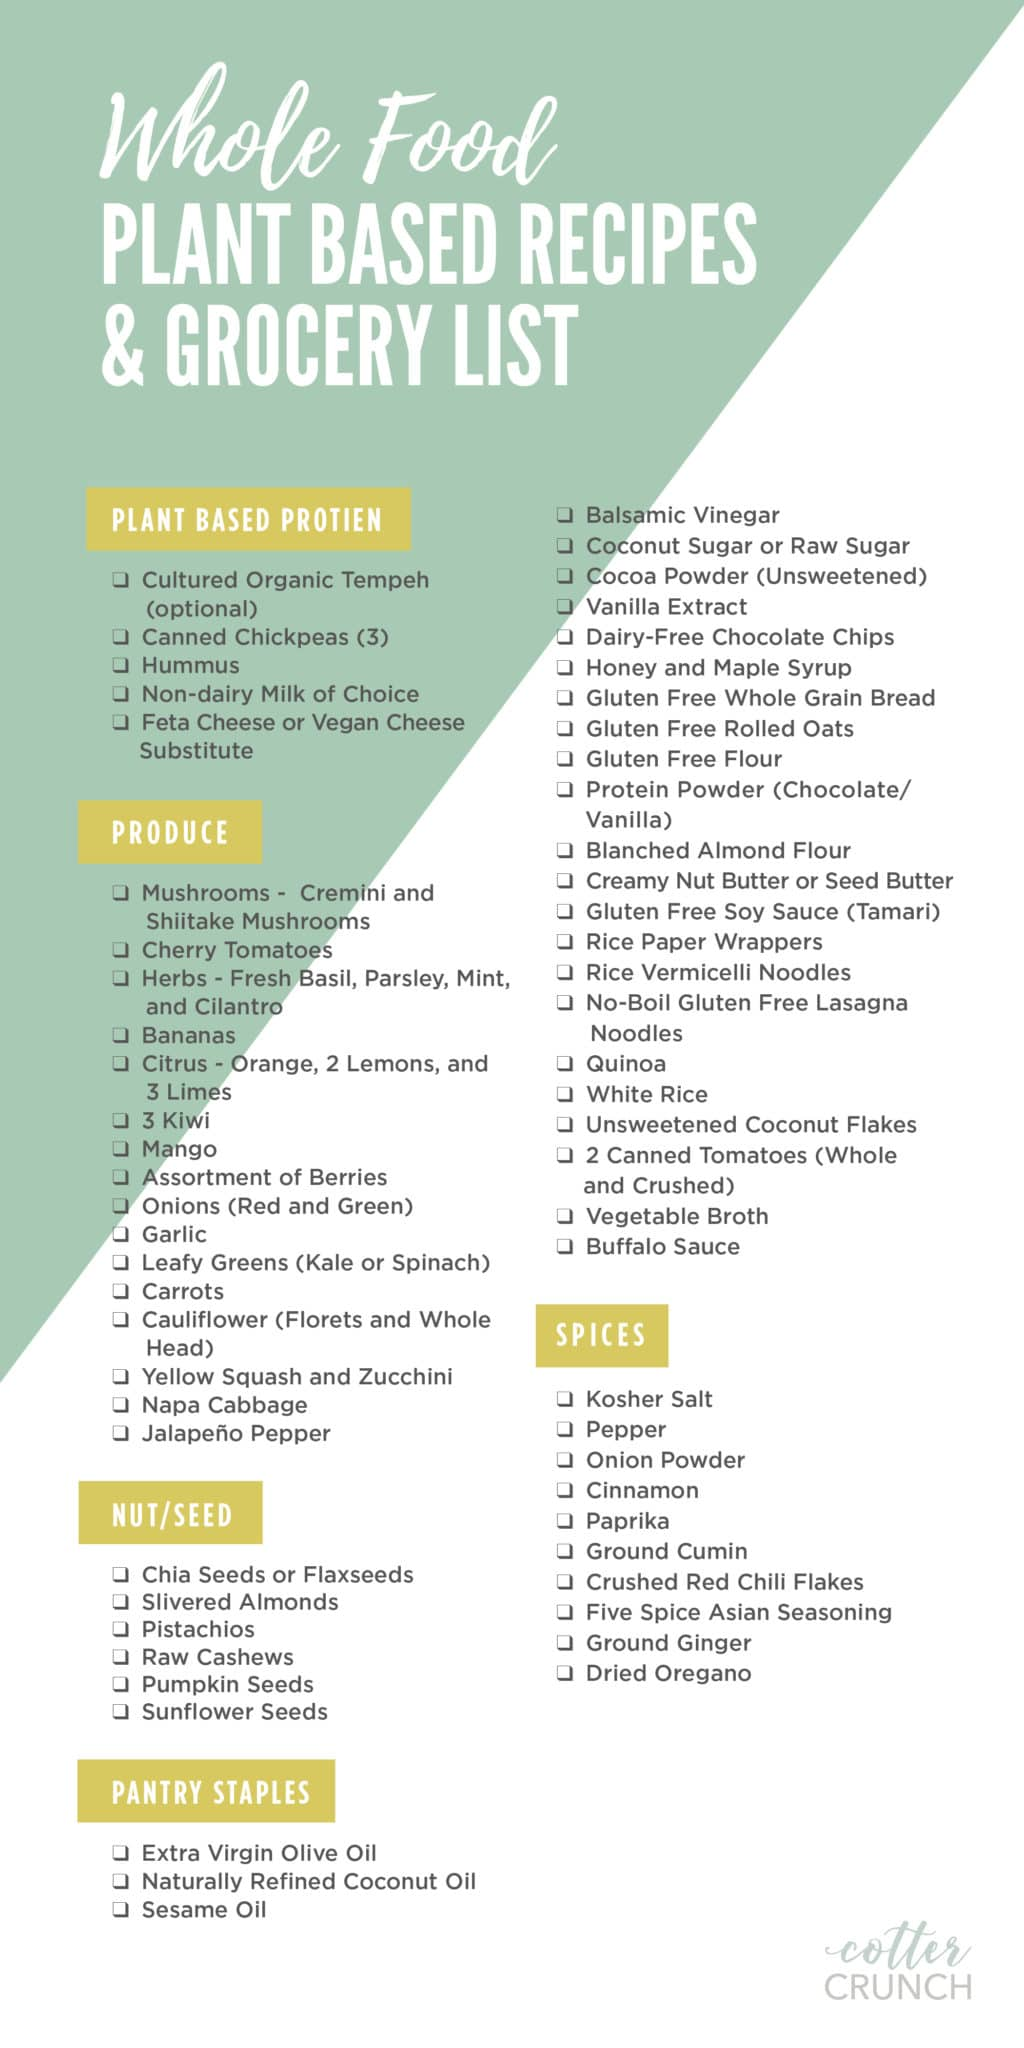 whole food plant based meal plan and grocery list